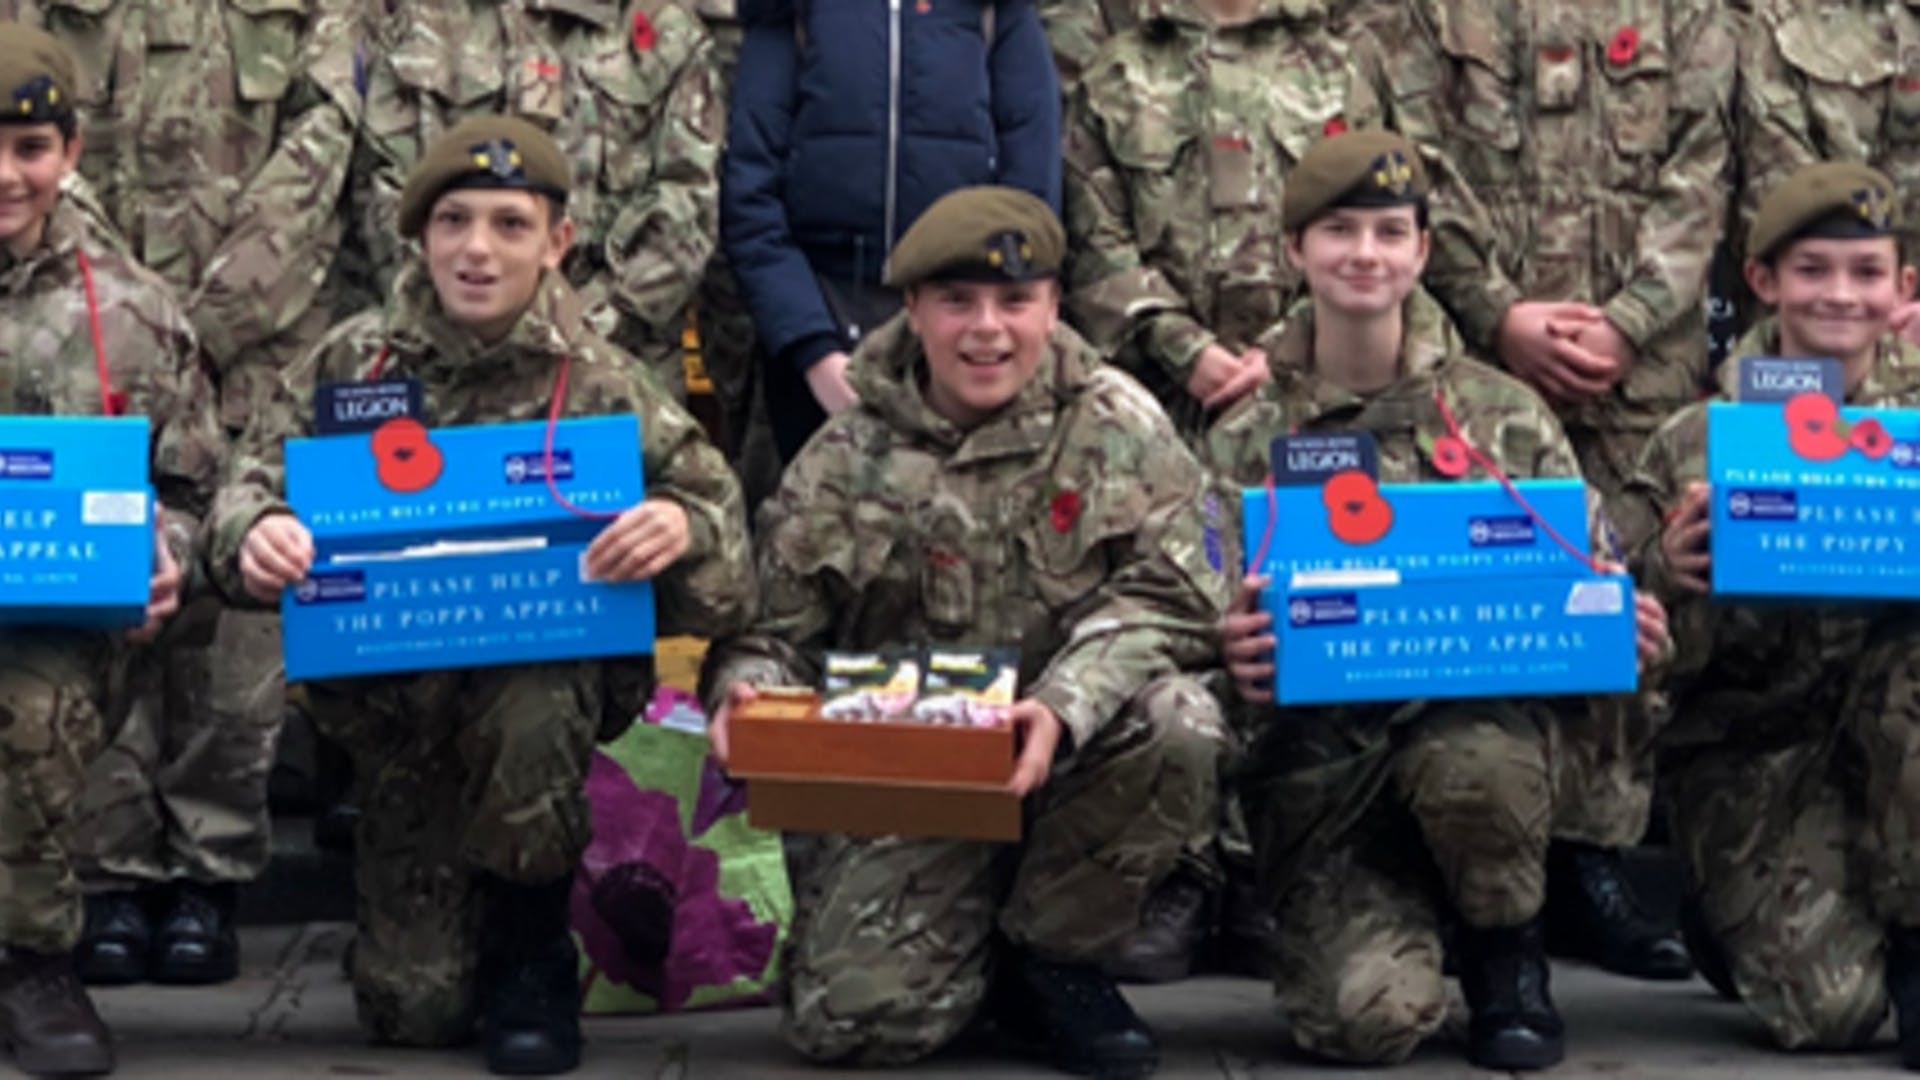 Sussex Poppy Appeal Banner2